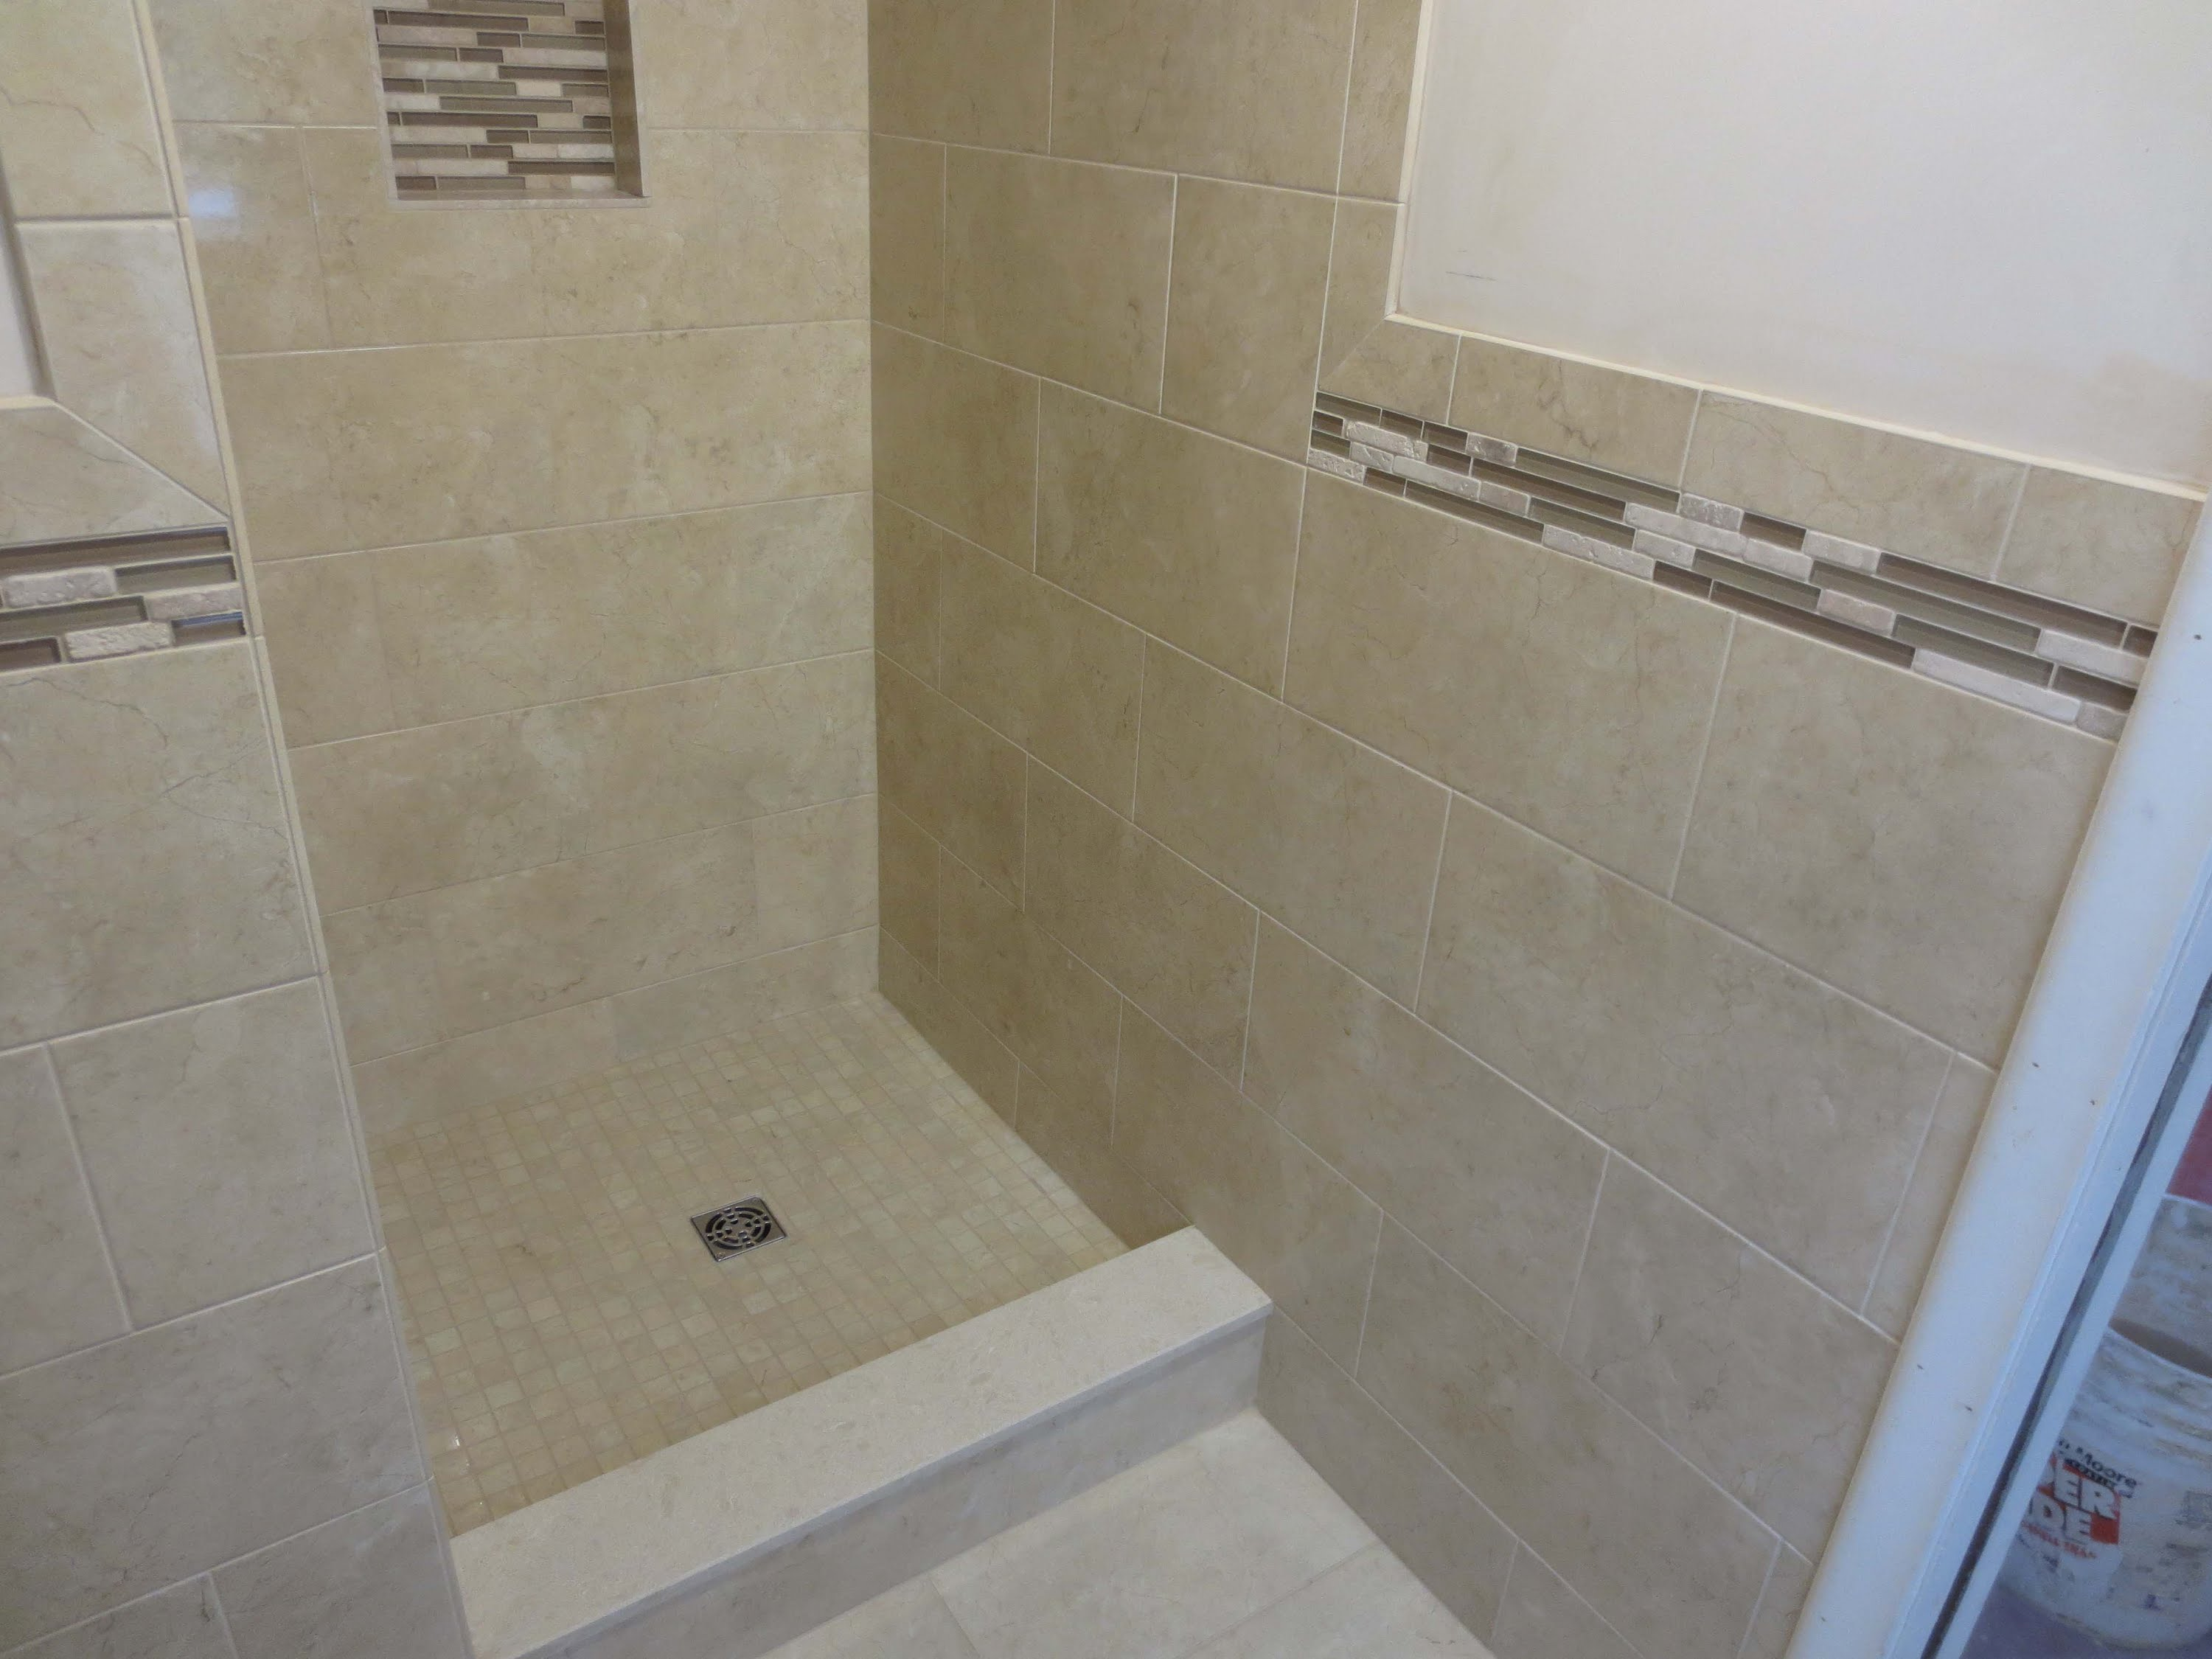 Decorating ceramic tile shower stall with schluter strip for awesome shower stall design with tile wall and flooring with schluter strip ideas dailygadgetfo Gallery